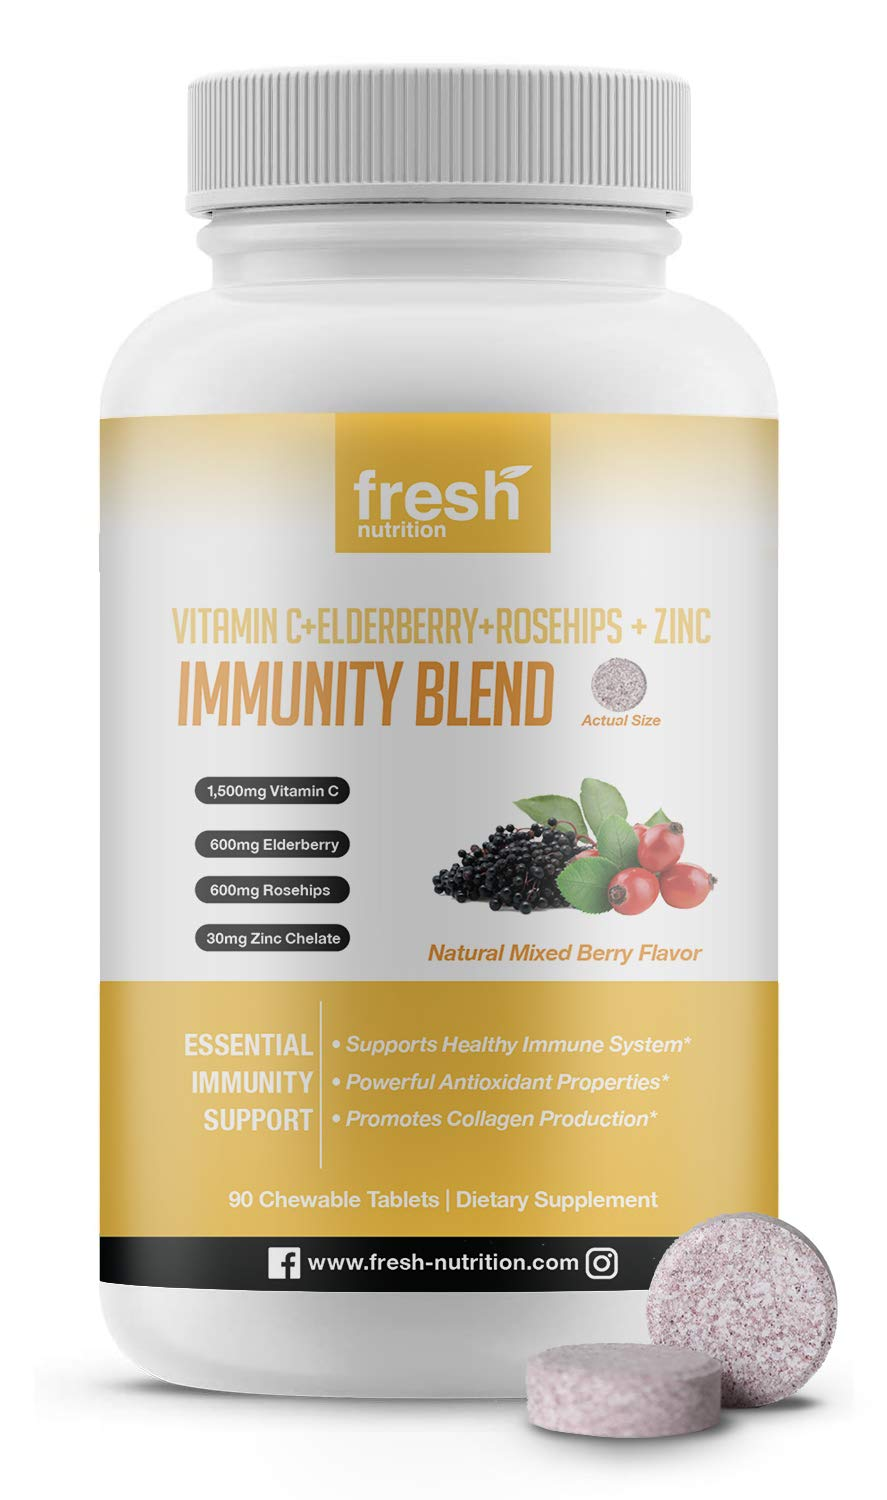 Tasty Chewable Blend of Vitamin C 1500mg, Elderberry 600mg, Rose Hips 600mg and Zinc 30mg Per Serving/ Per Day - Vegan Friendly, Non GMO